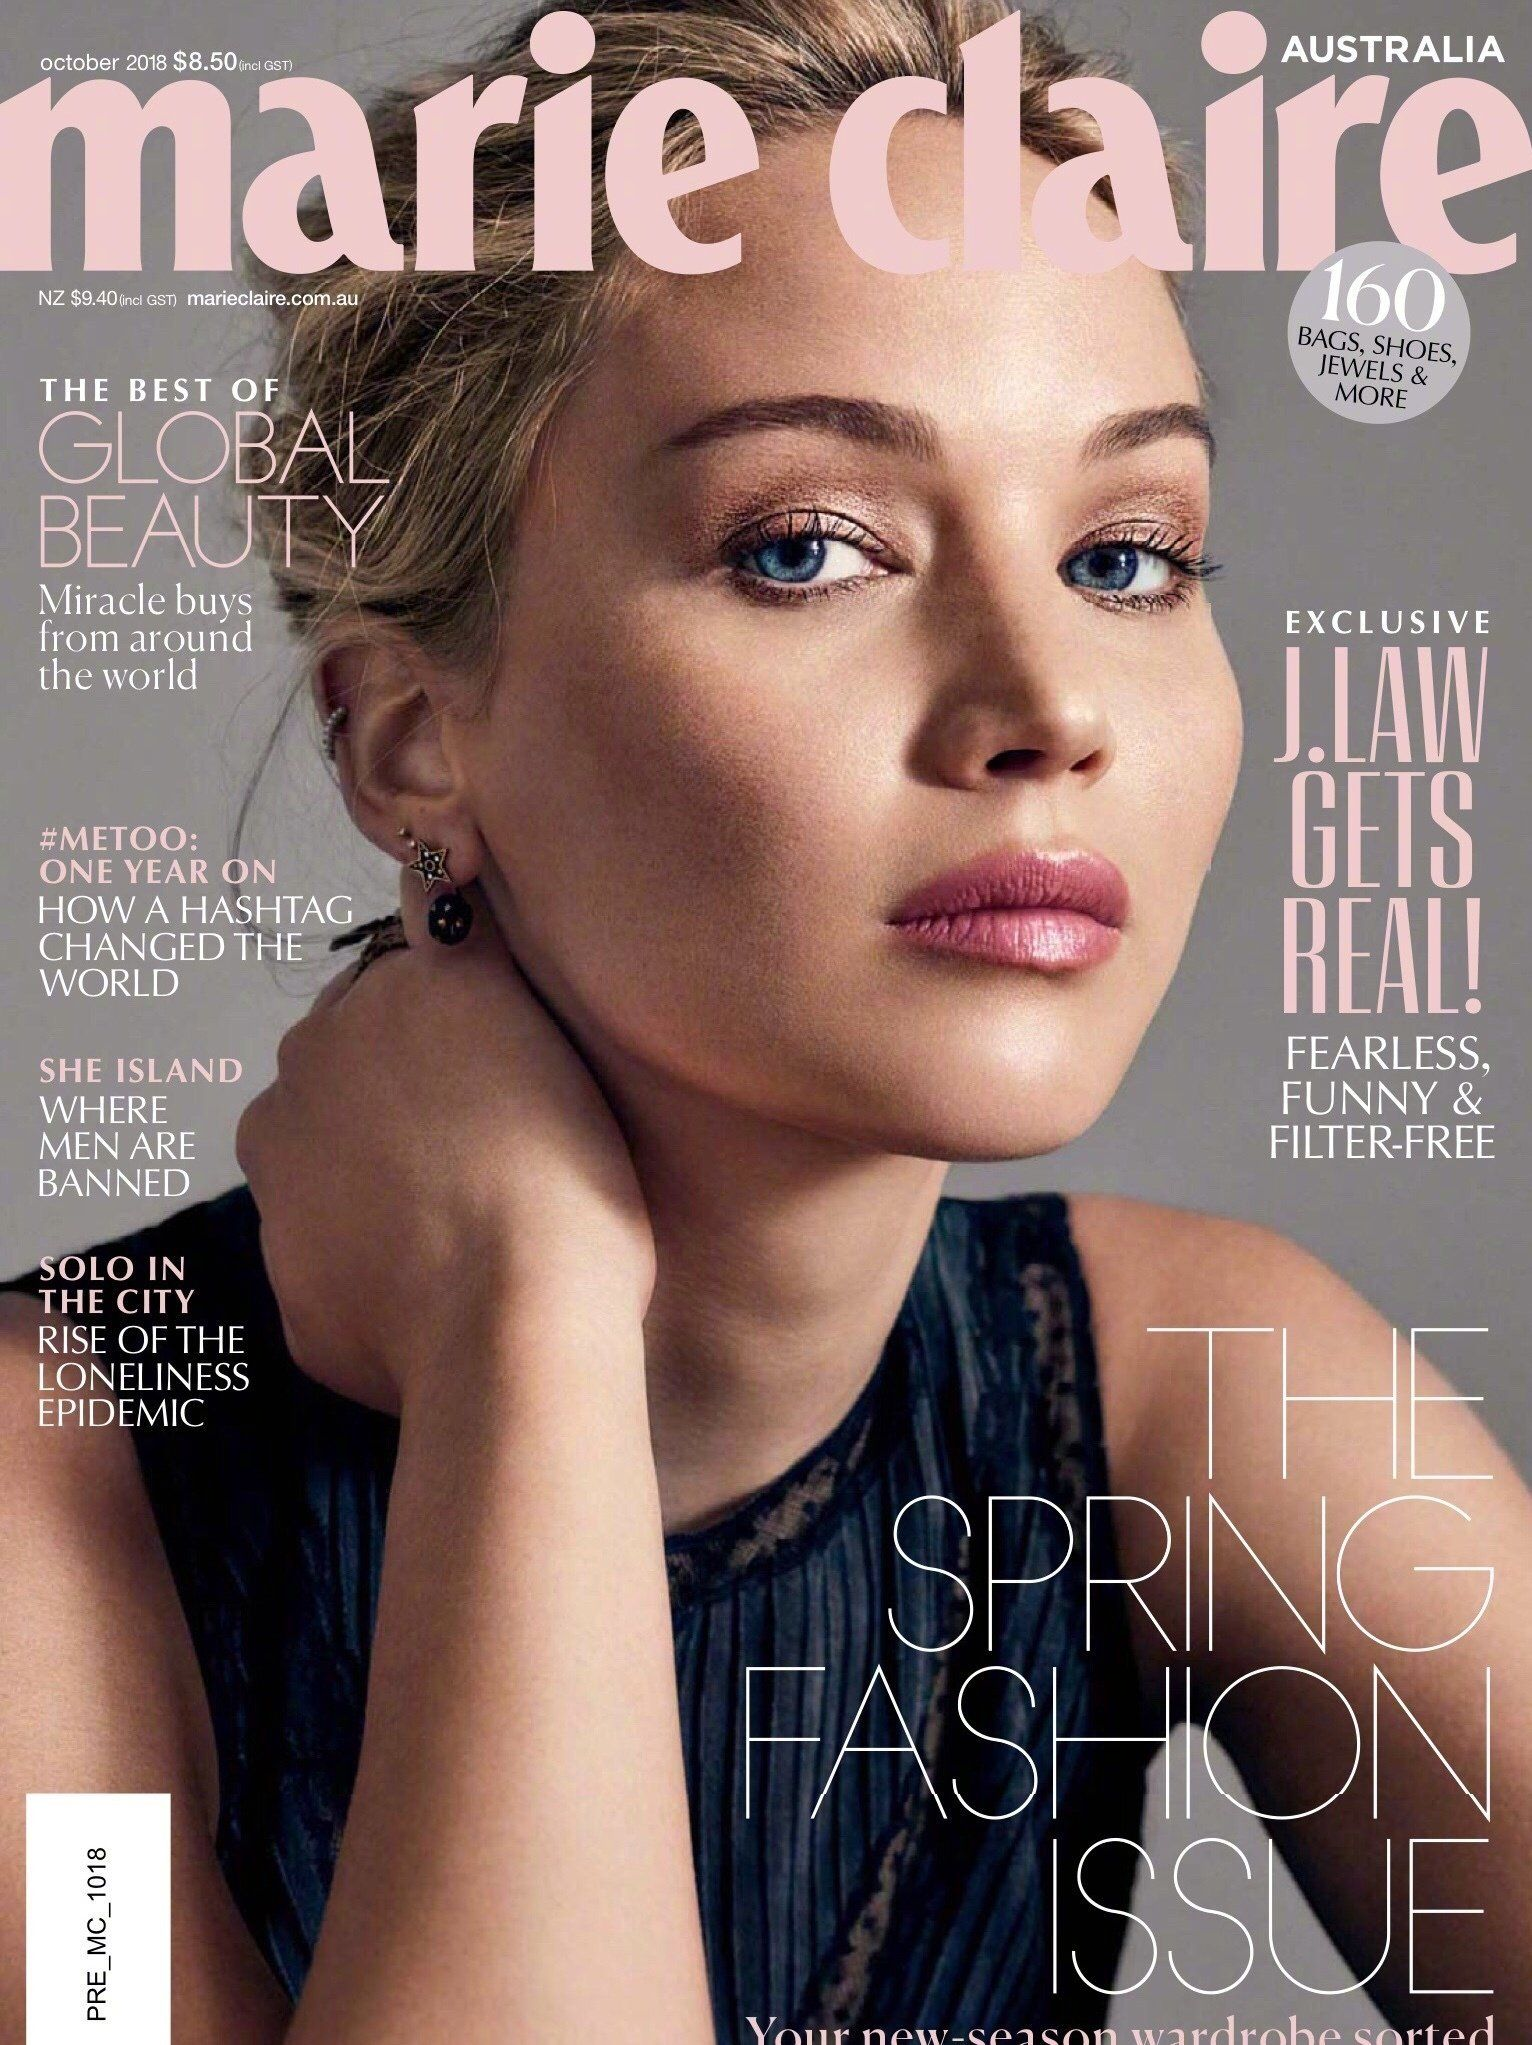 It's Britney Meet Marie Claire's October issue cover star recommendations